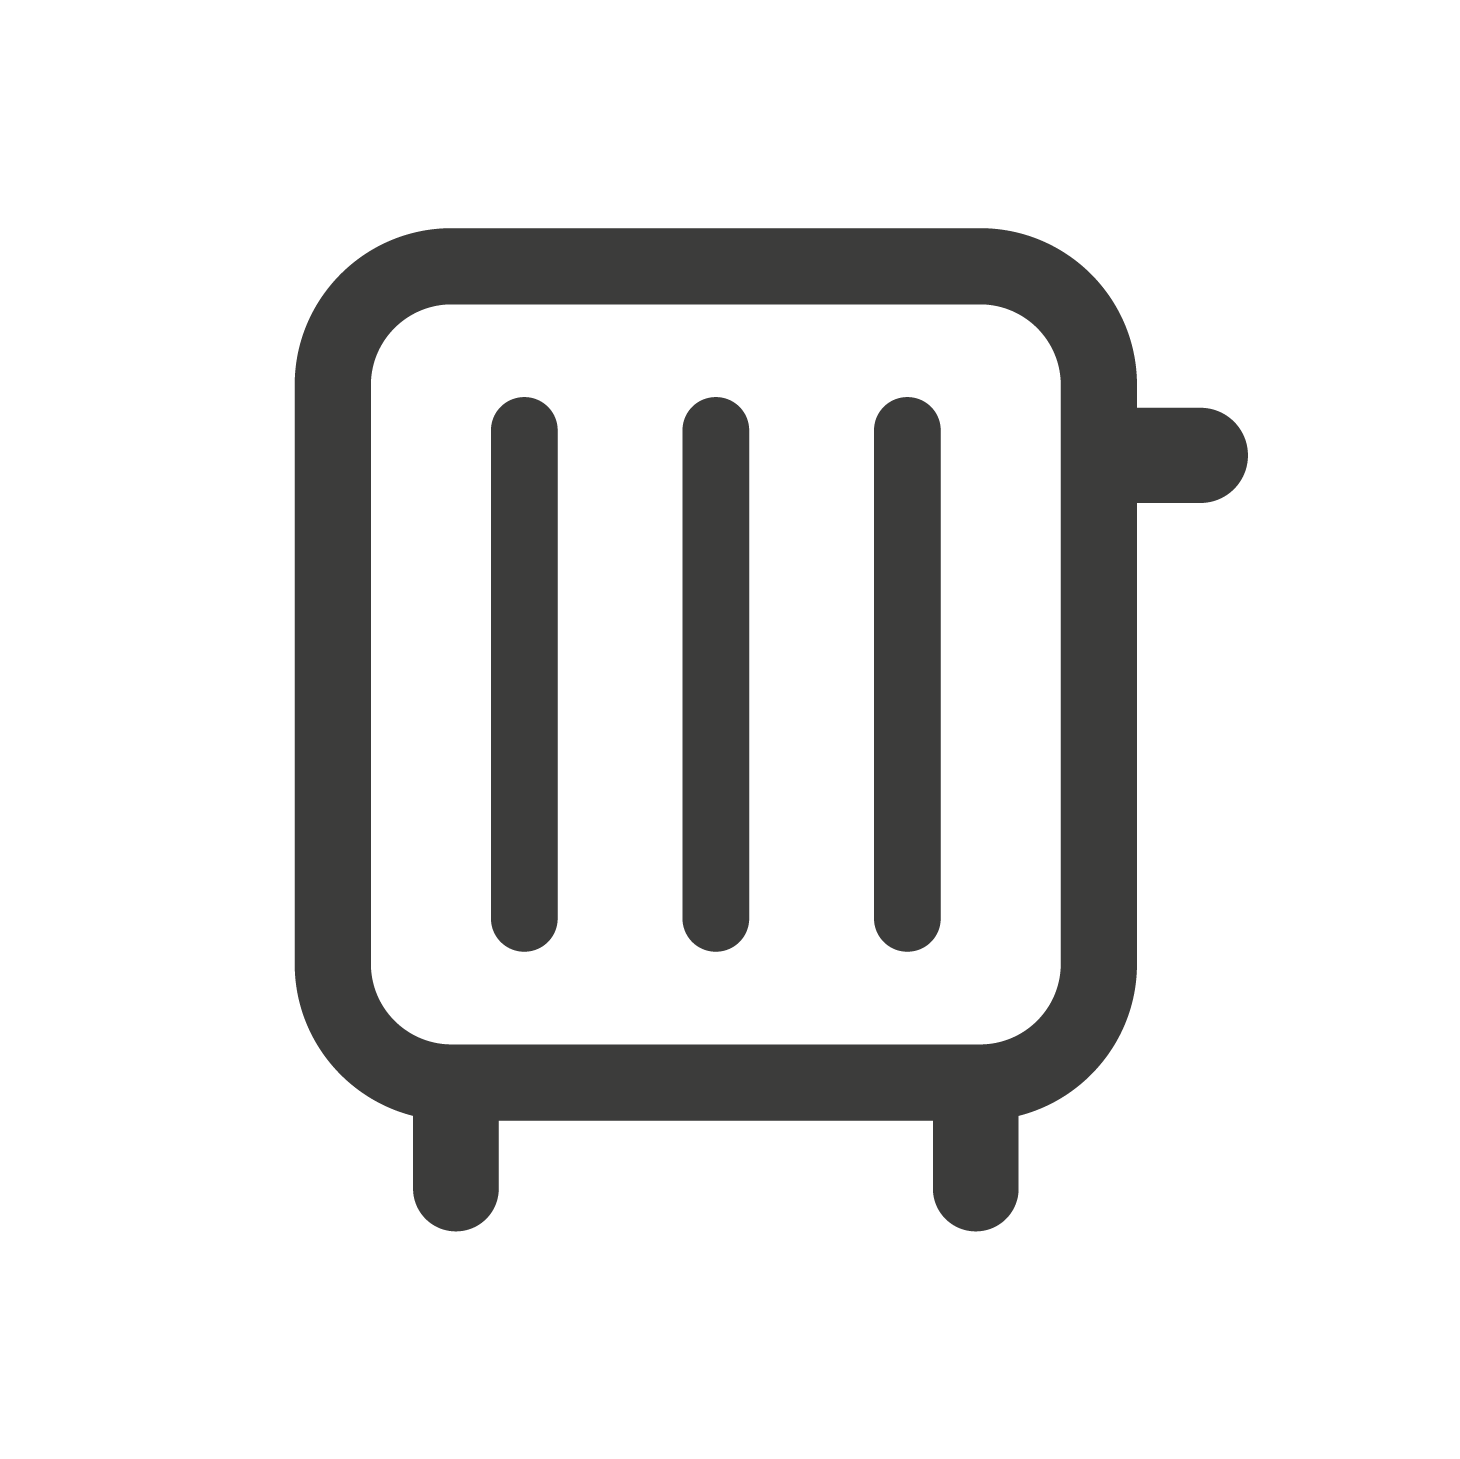 Heizung Icon